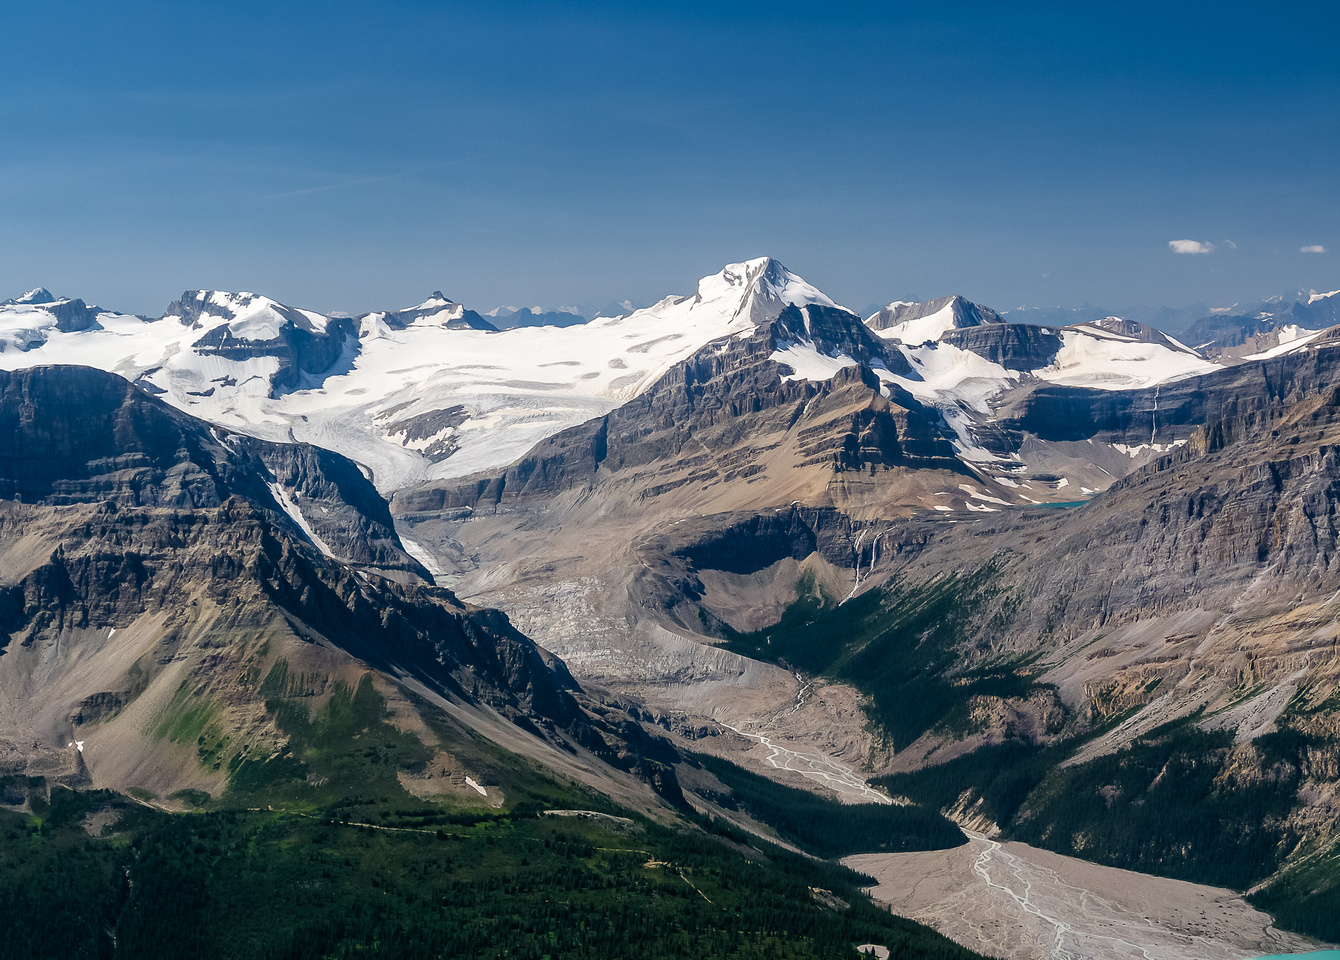 View up the Peyto Glacier to Habel, Ayesha, Baker, Peyto and Trapper.